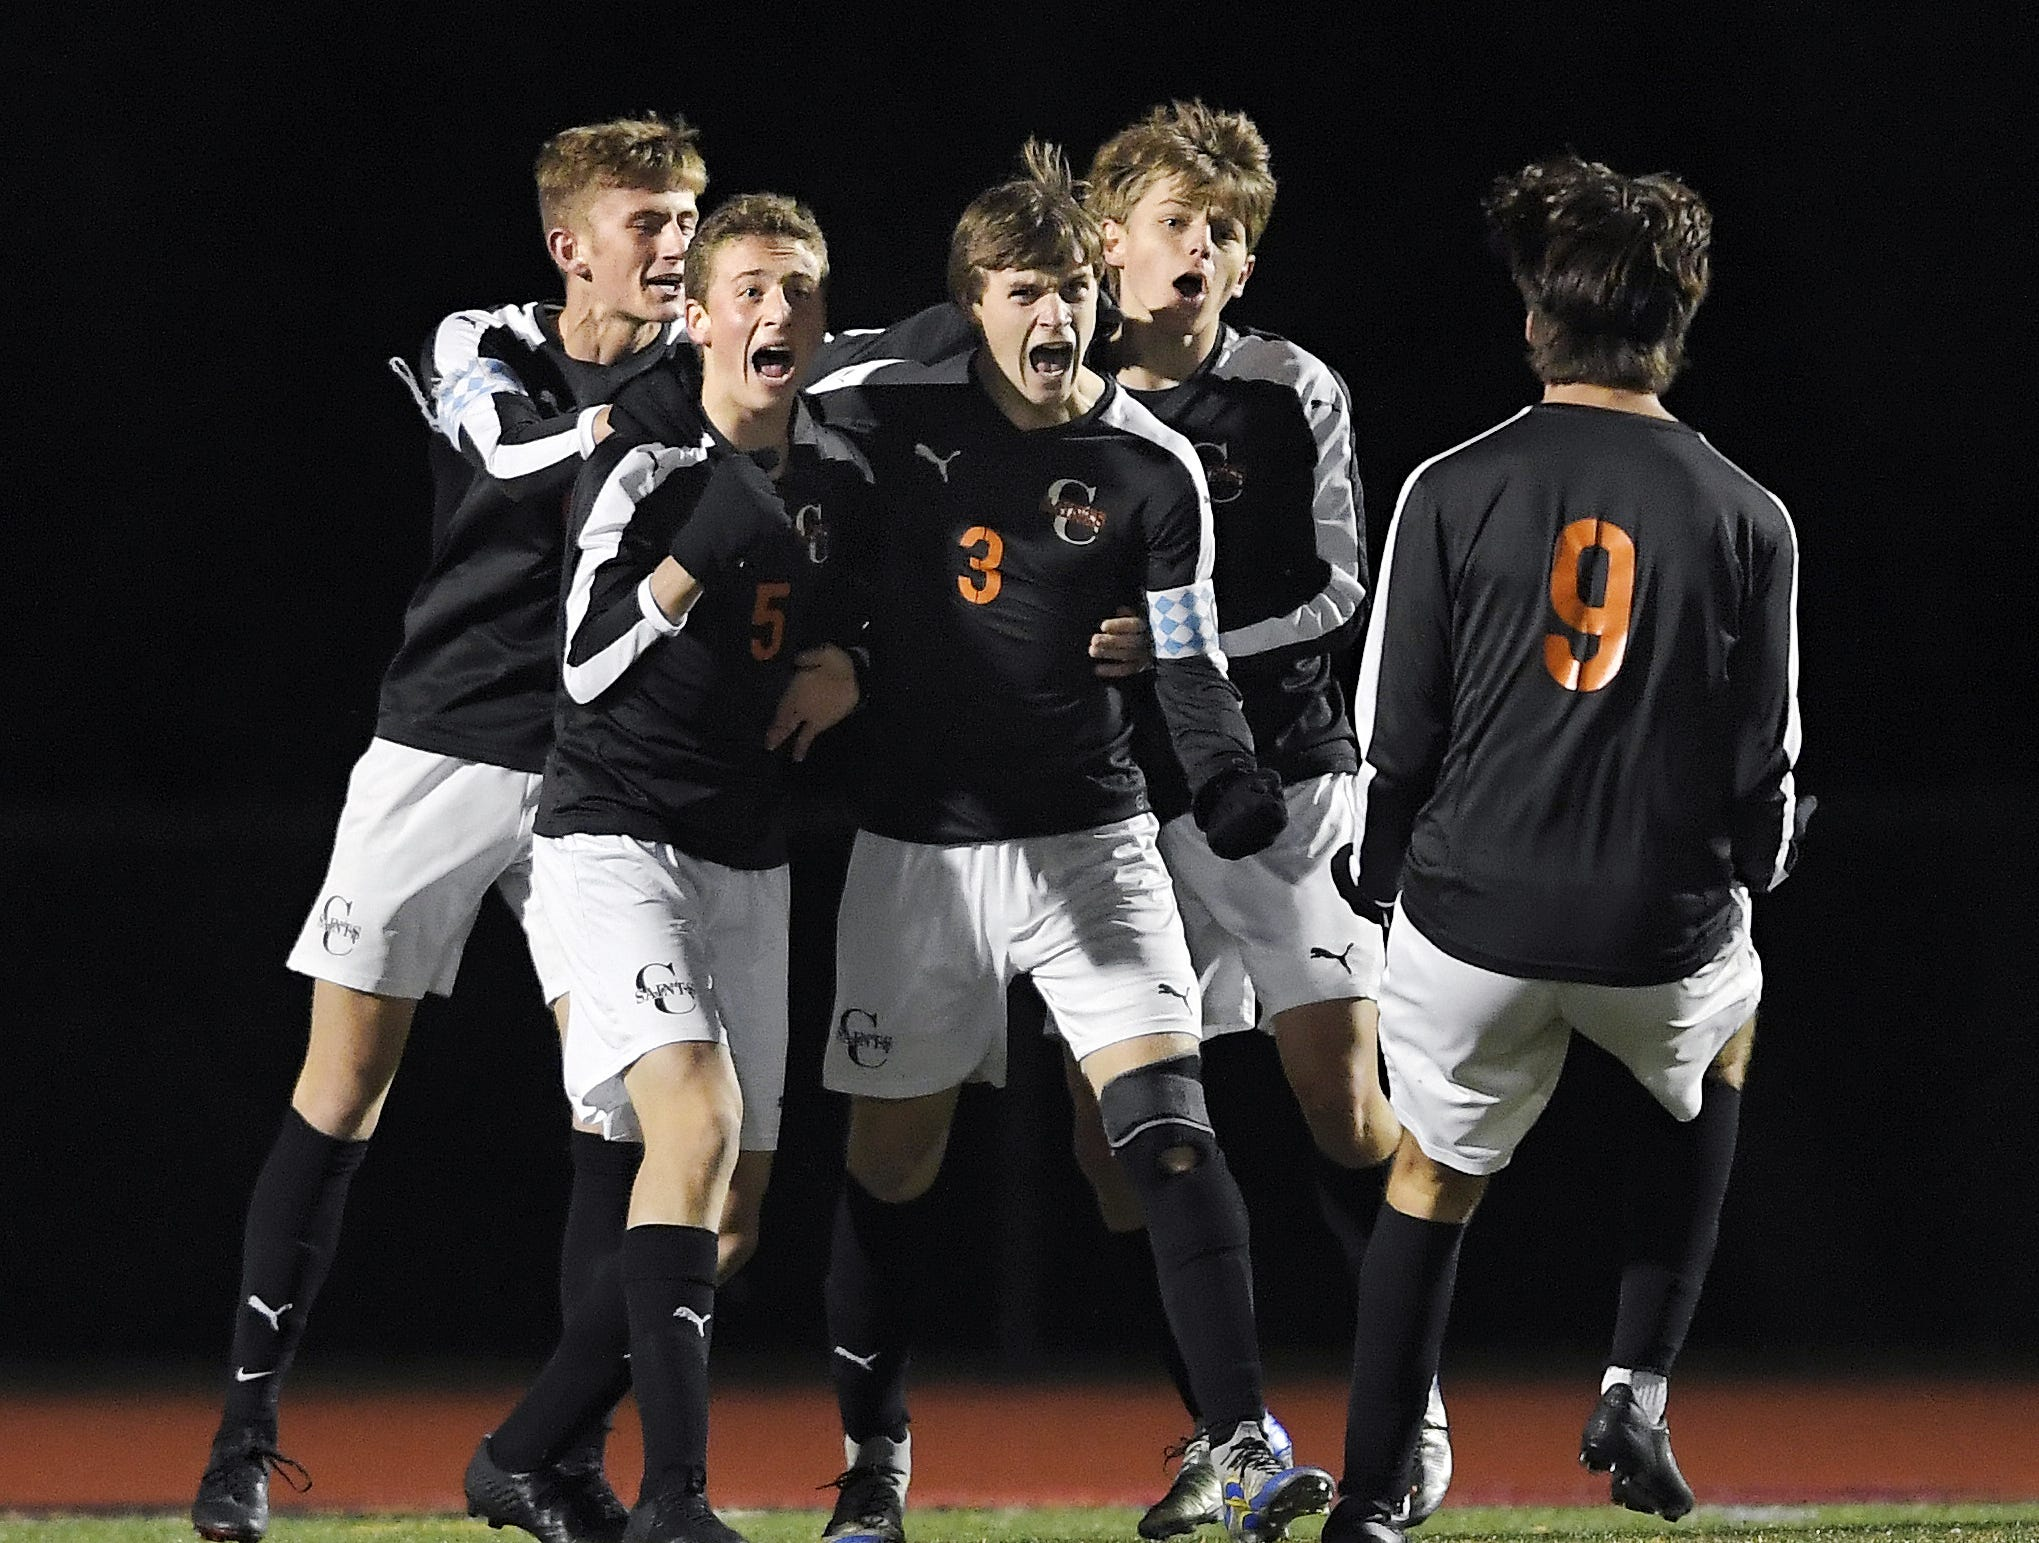 Churchville-Chili's Colby Egan (3) celebrates his goal with teammates during a Class A sectional semifinal against Wayne played at Hilton High School, Friday, Oct. 26, 2018. No. 1 seed Churchville-Chili advanced to the Class A final with a 3-2 win over No. 4 seed Wayne.